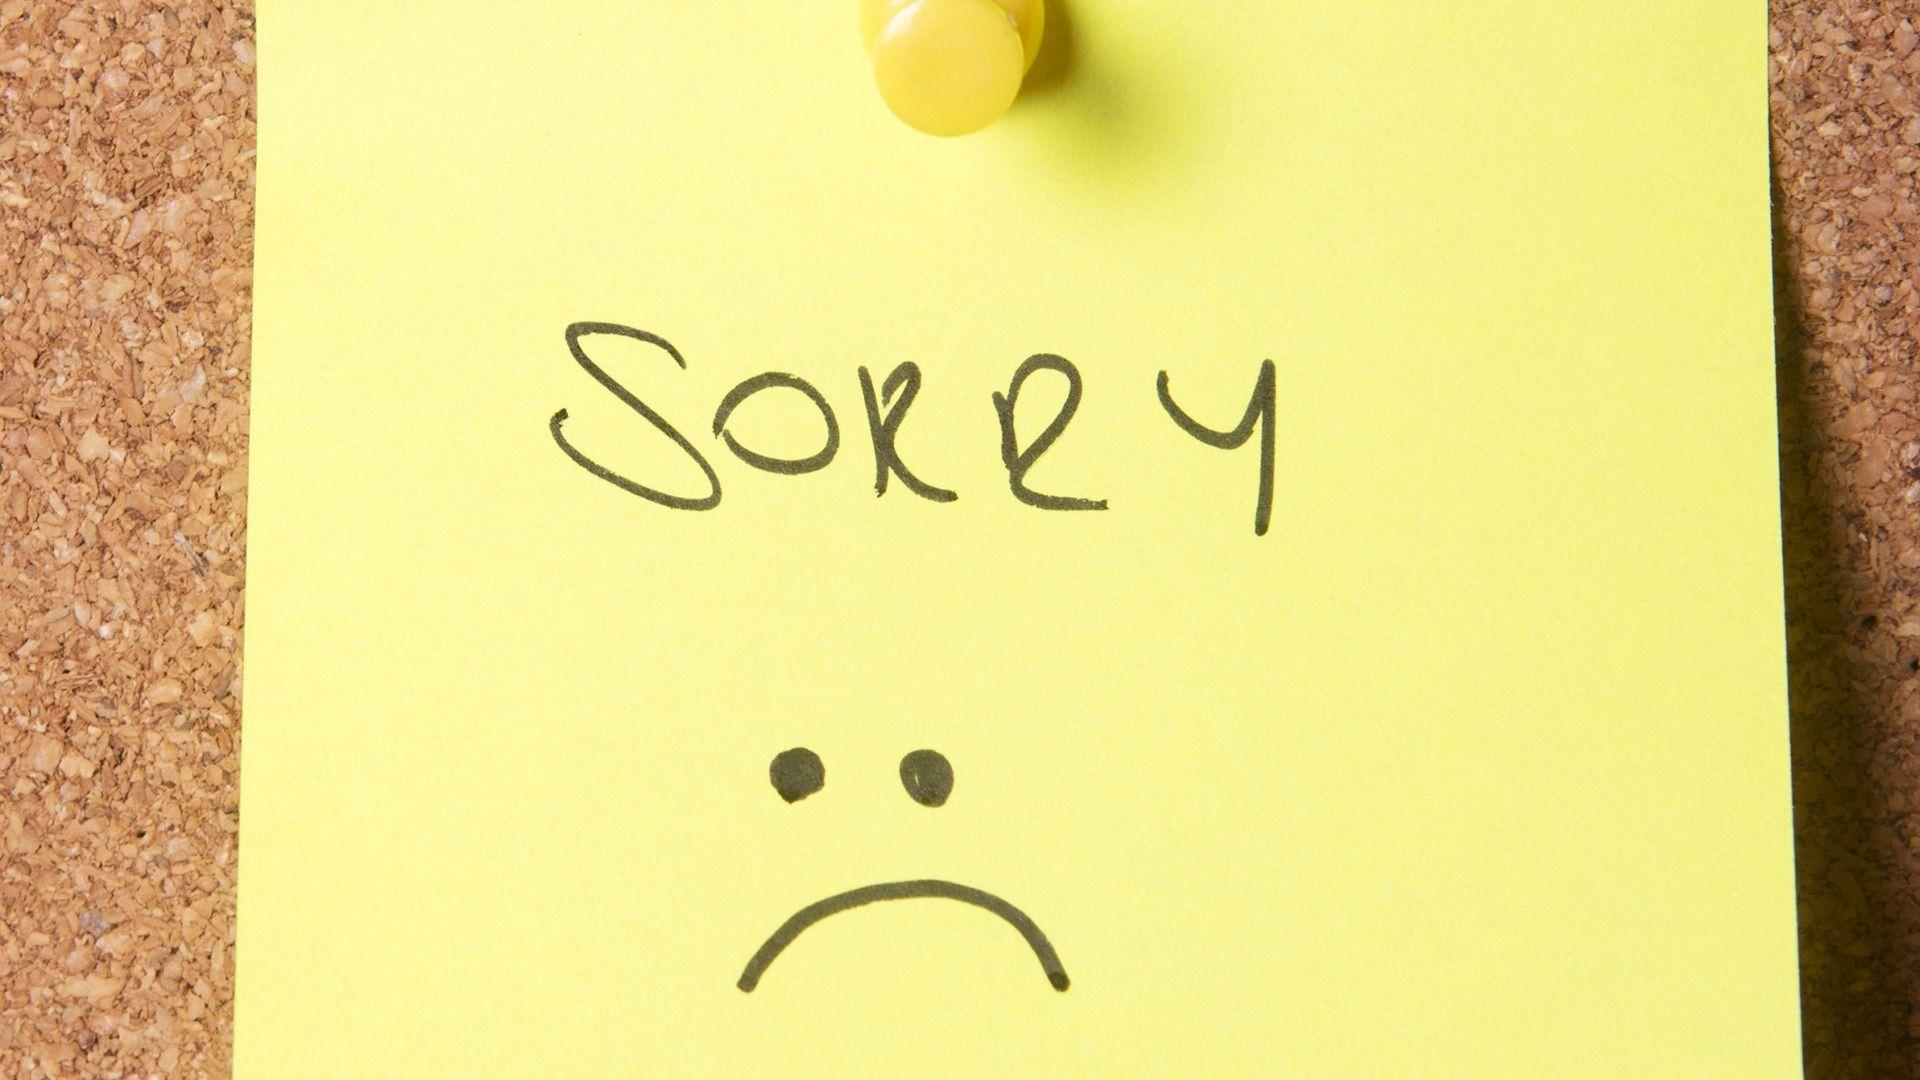 Sorry Hd Wallpapers Wallpaper Cave